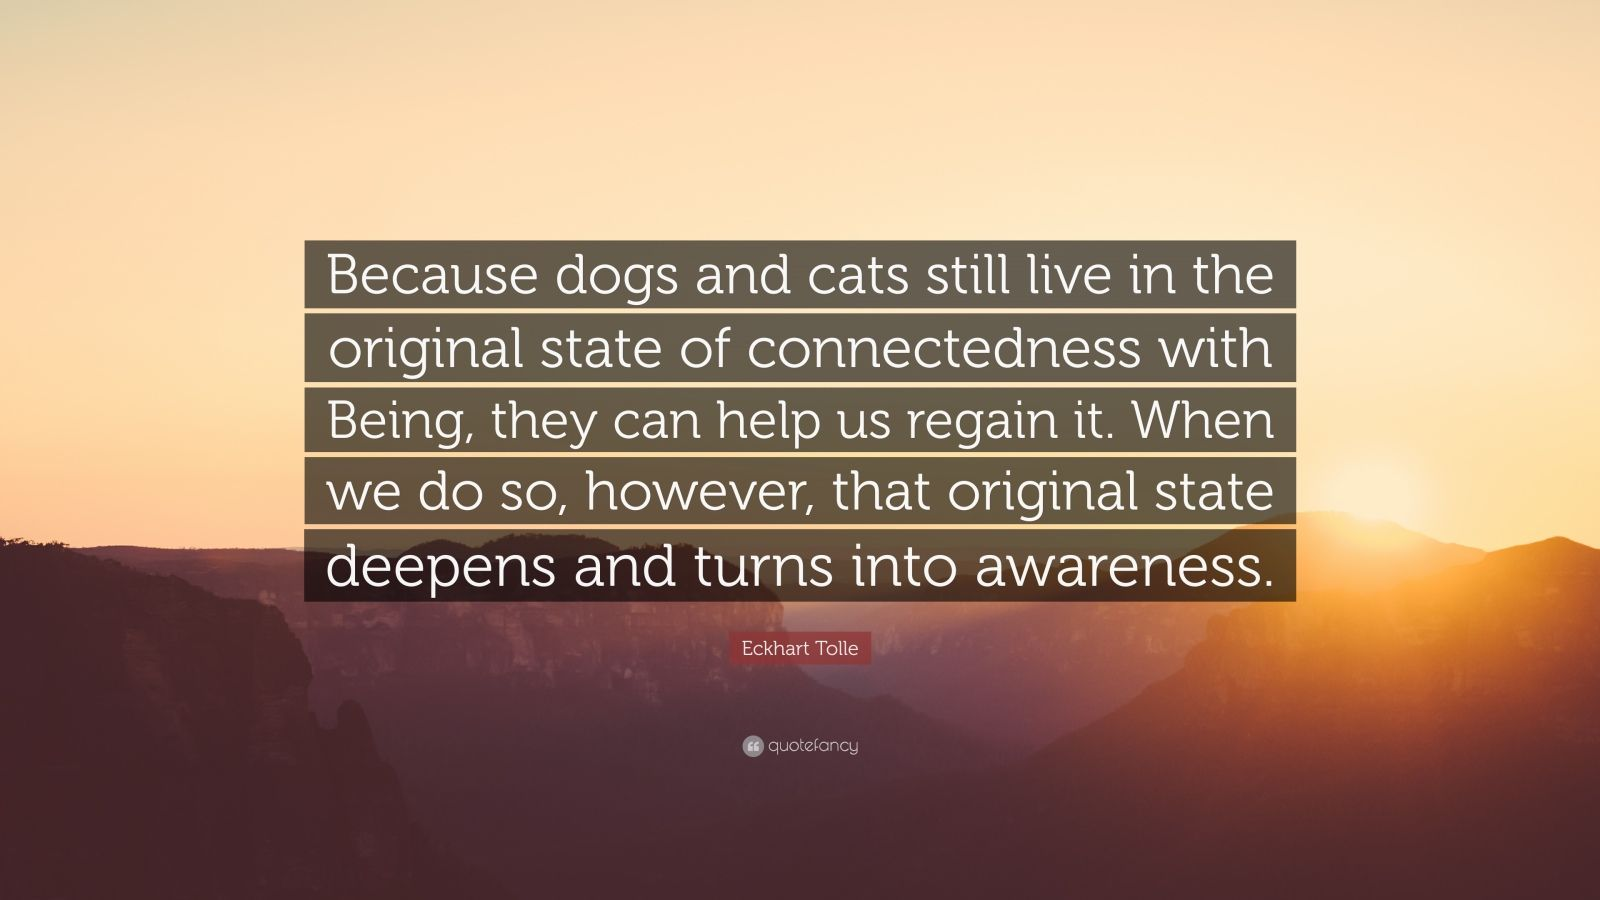 "Eckhart Tolle Quote: ""Because dogs and cats still live in the original state of connectedness with Being, they can help us regain it. When we do so, however, that original state deepens and turns into awareness."""